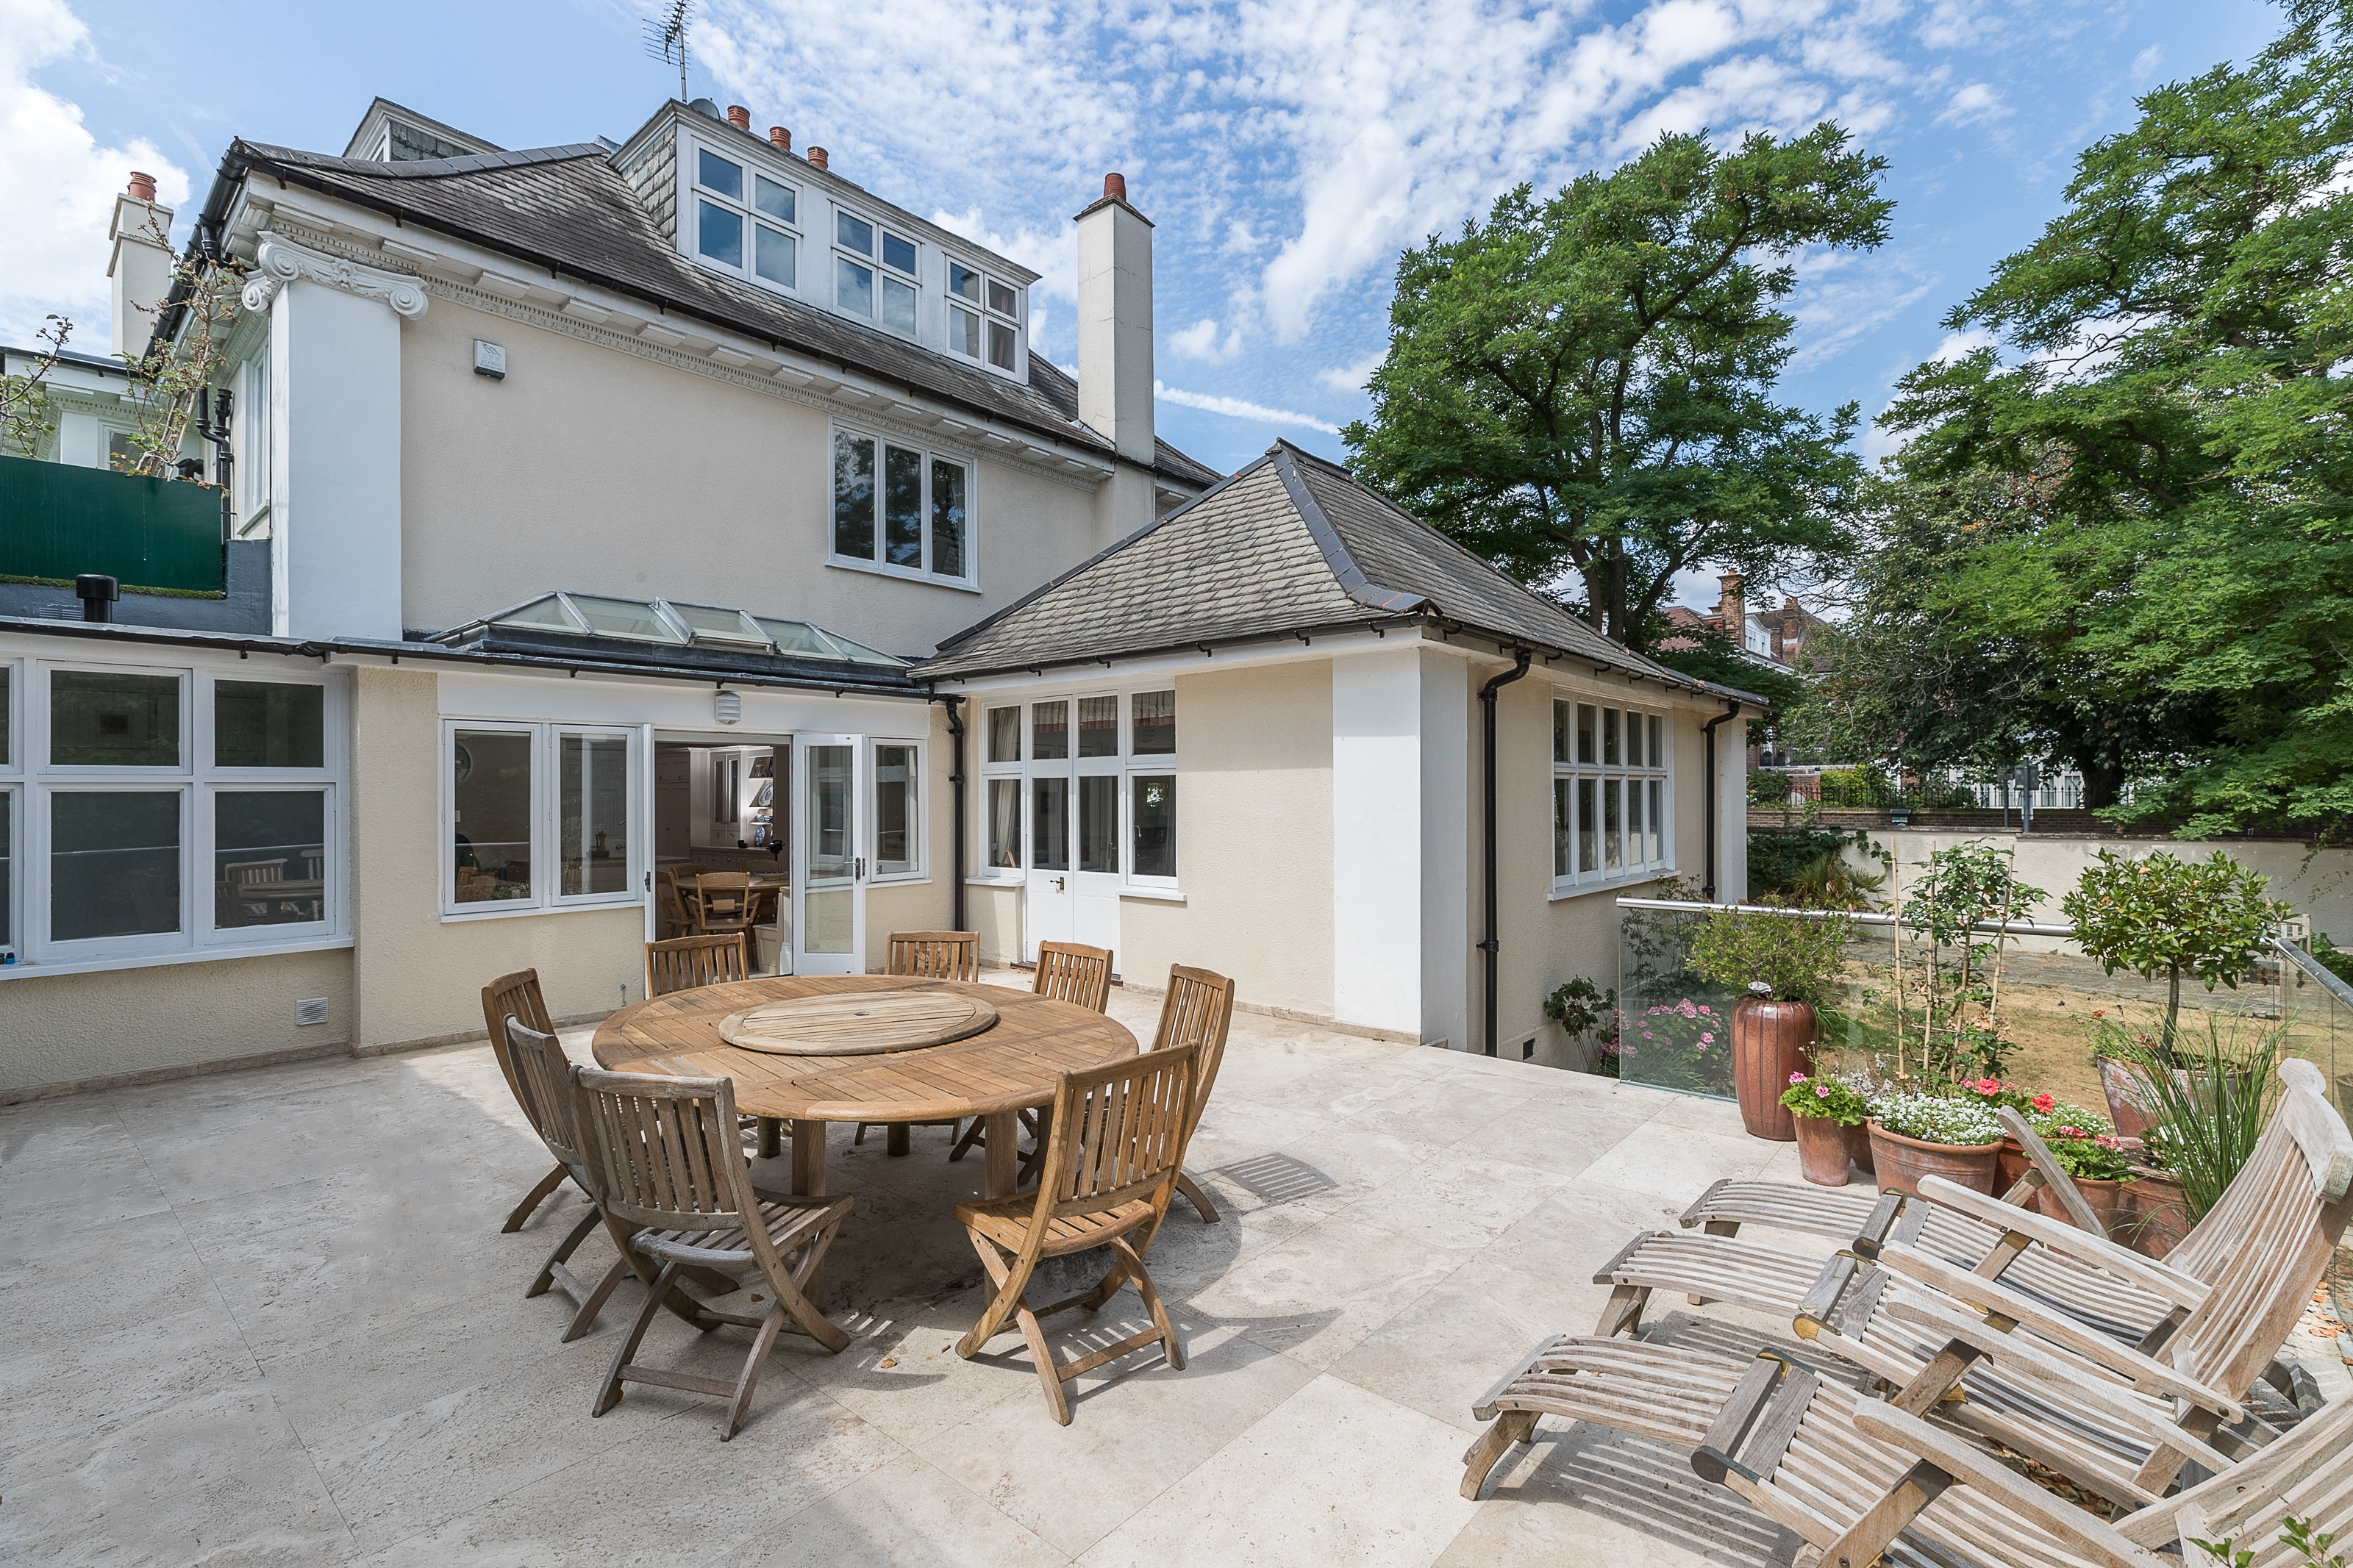 Property Image 1 - Stunning 5 bedroom house in Wimbledon with a garden